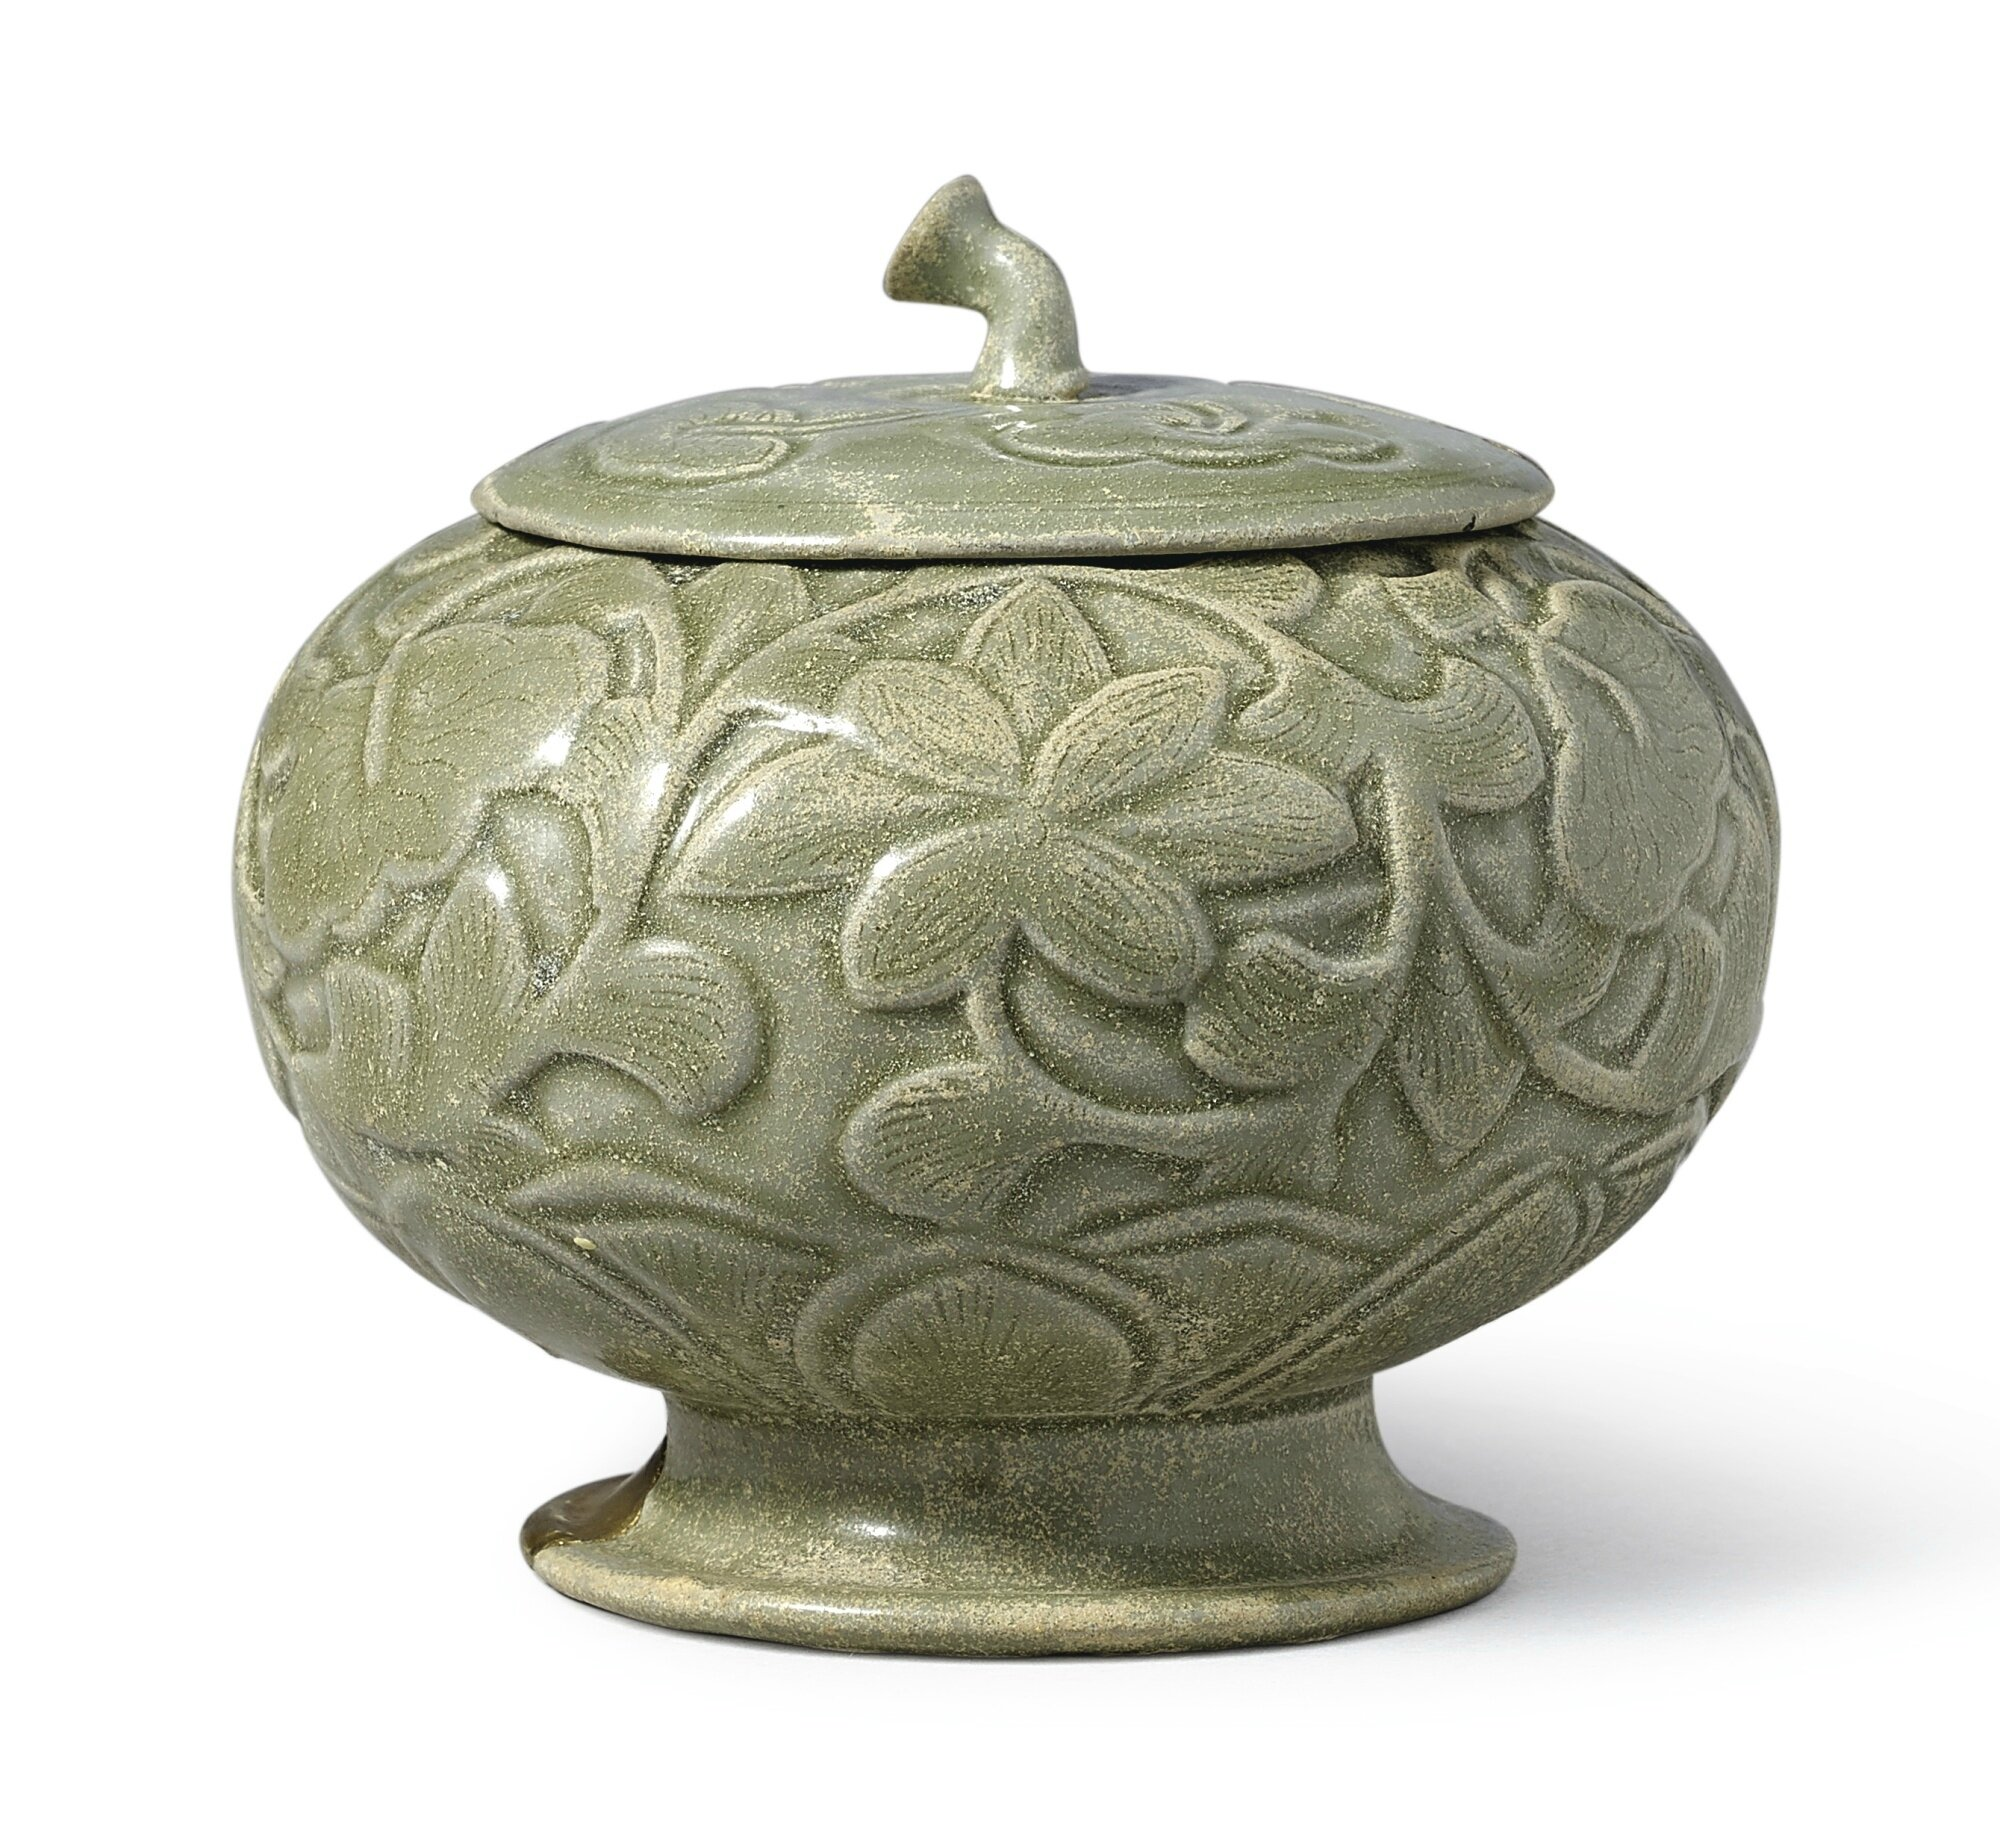 A rare 'Yue' carved celadon globular 'floral' vessel and cover, Five Dynasties (907-960)